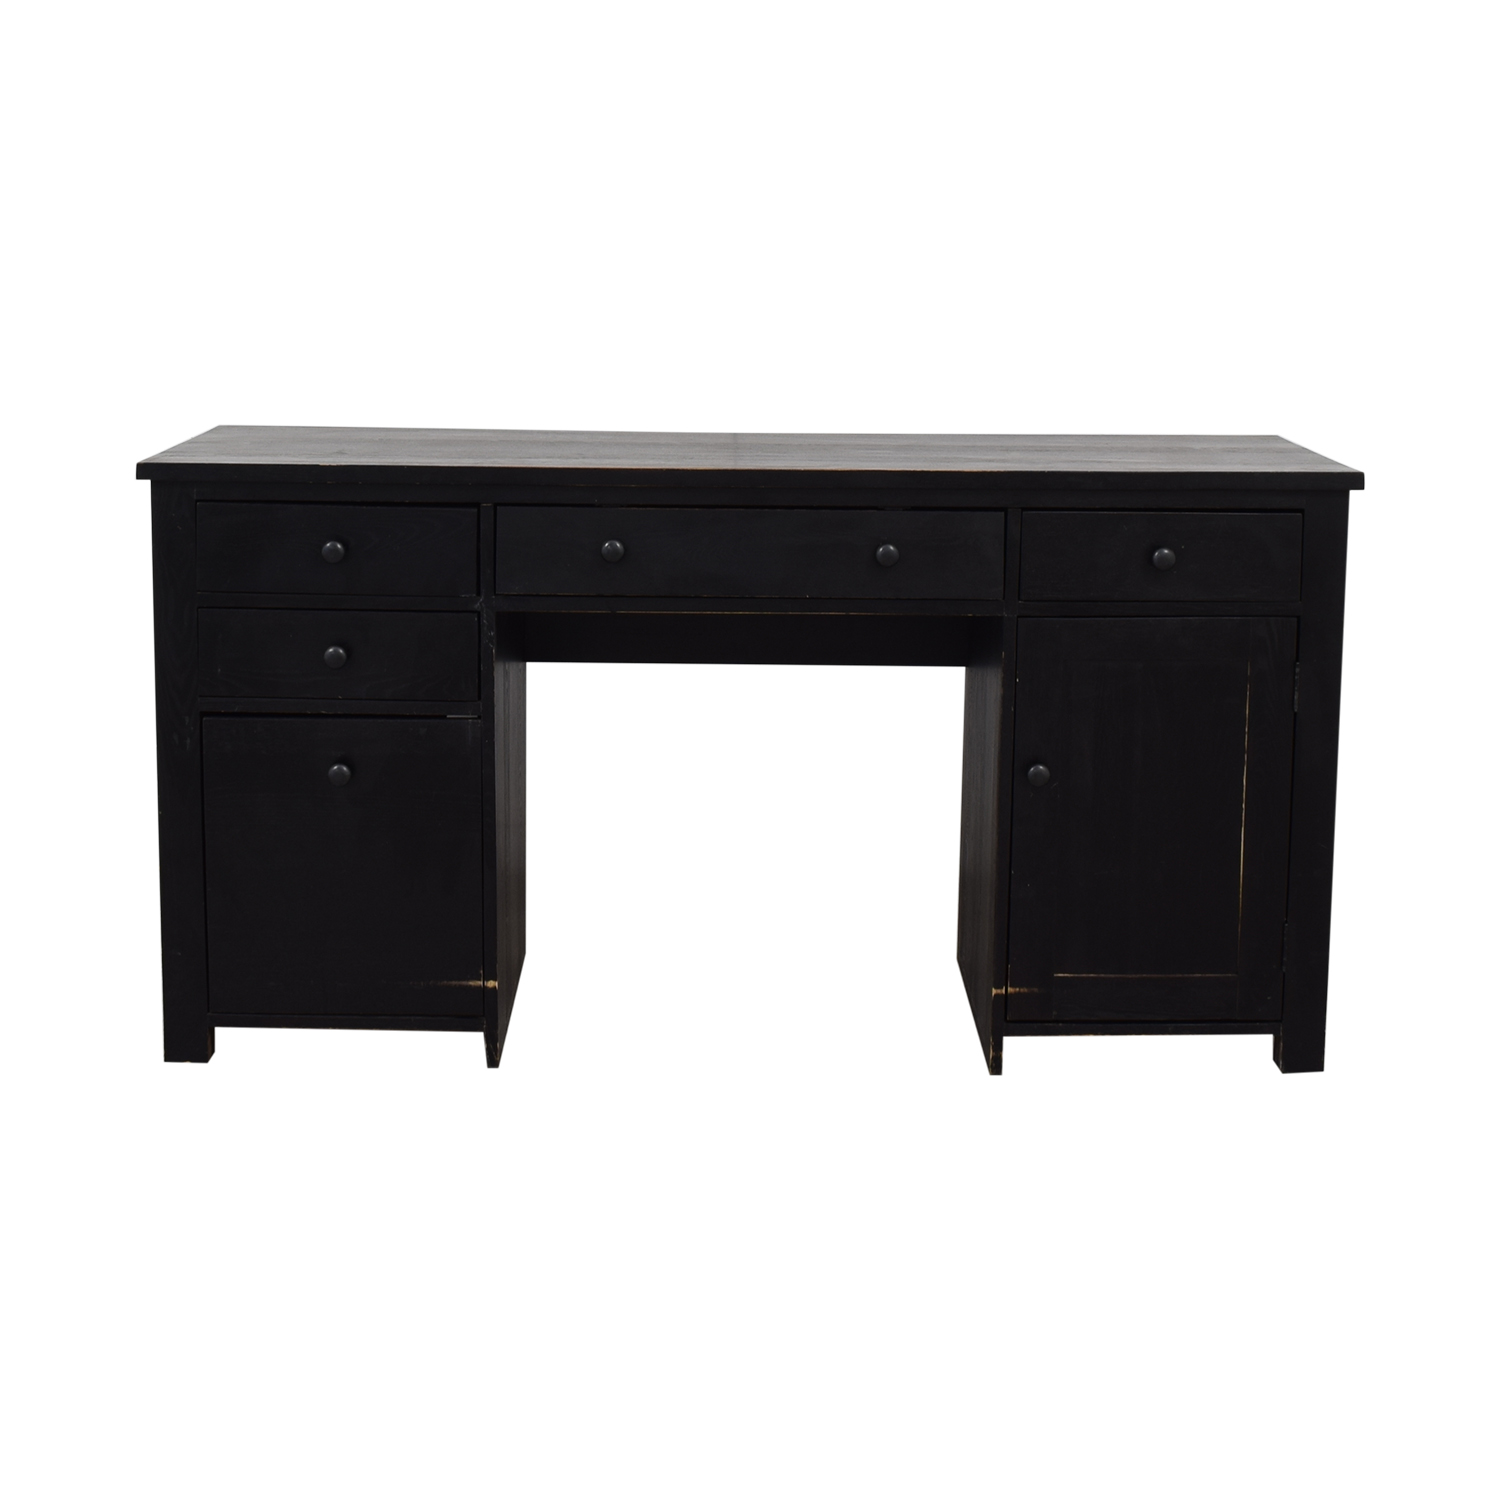 Black Four Drawer Desk with Keyboard Tray and Storage Home Office Desks